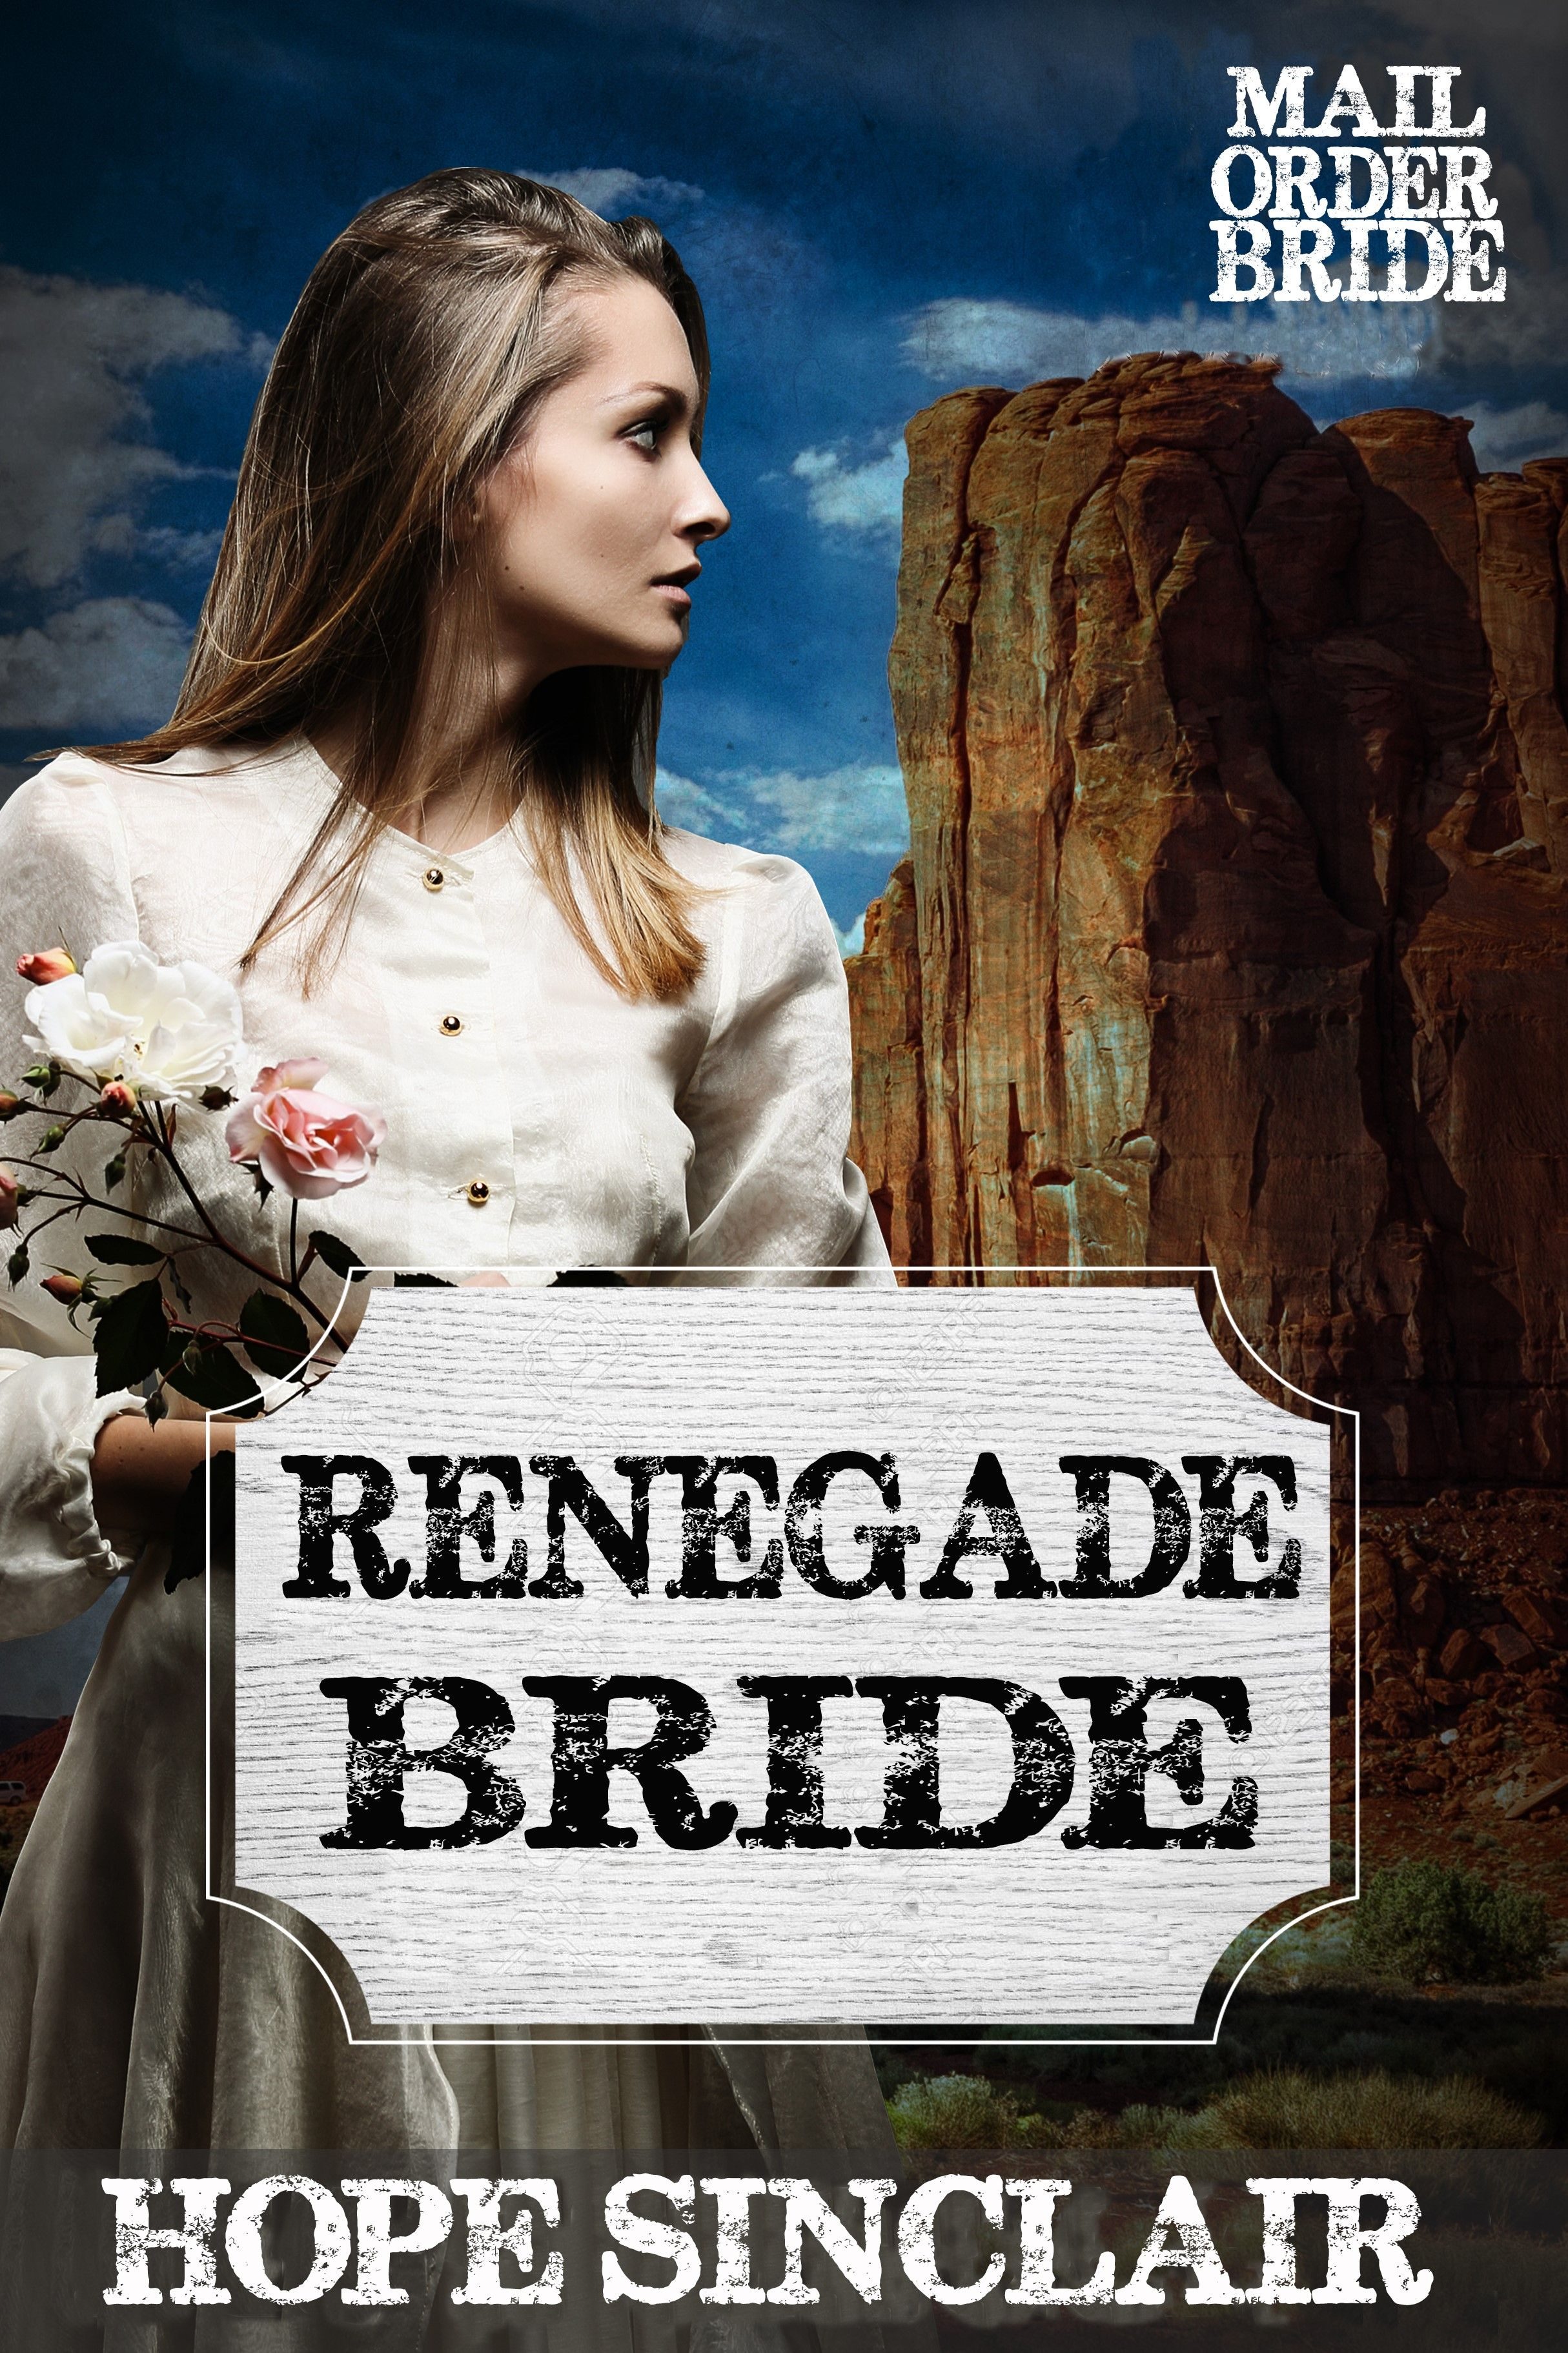 Mail Order Bride: Renegade Bride (A Clean Western Historical Romance) (Headed for Salvation Mail Order Bride Book 1)'s Book Image